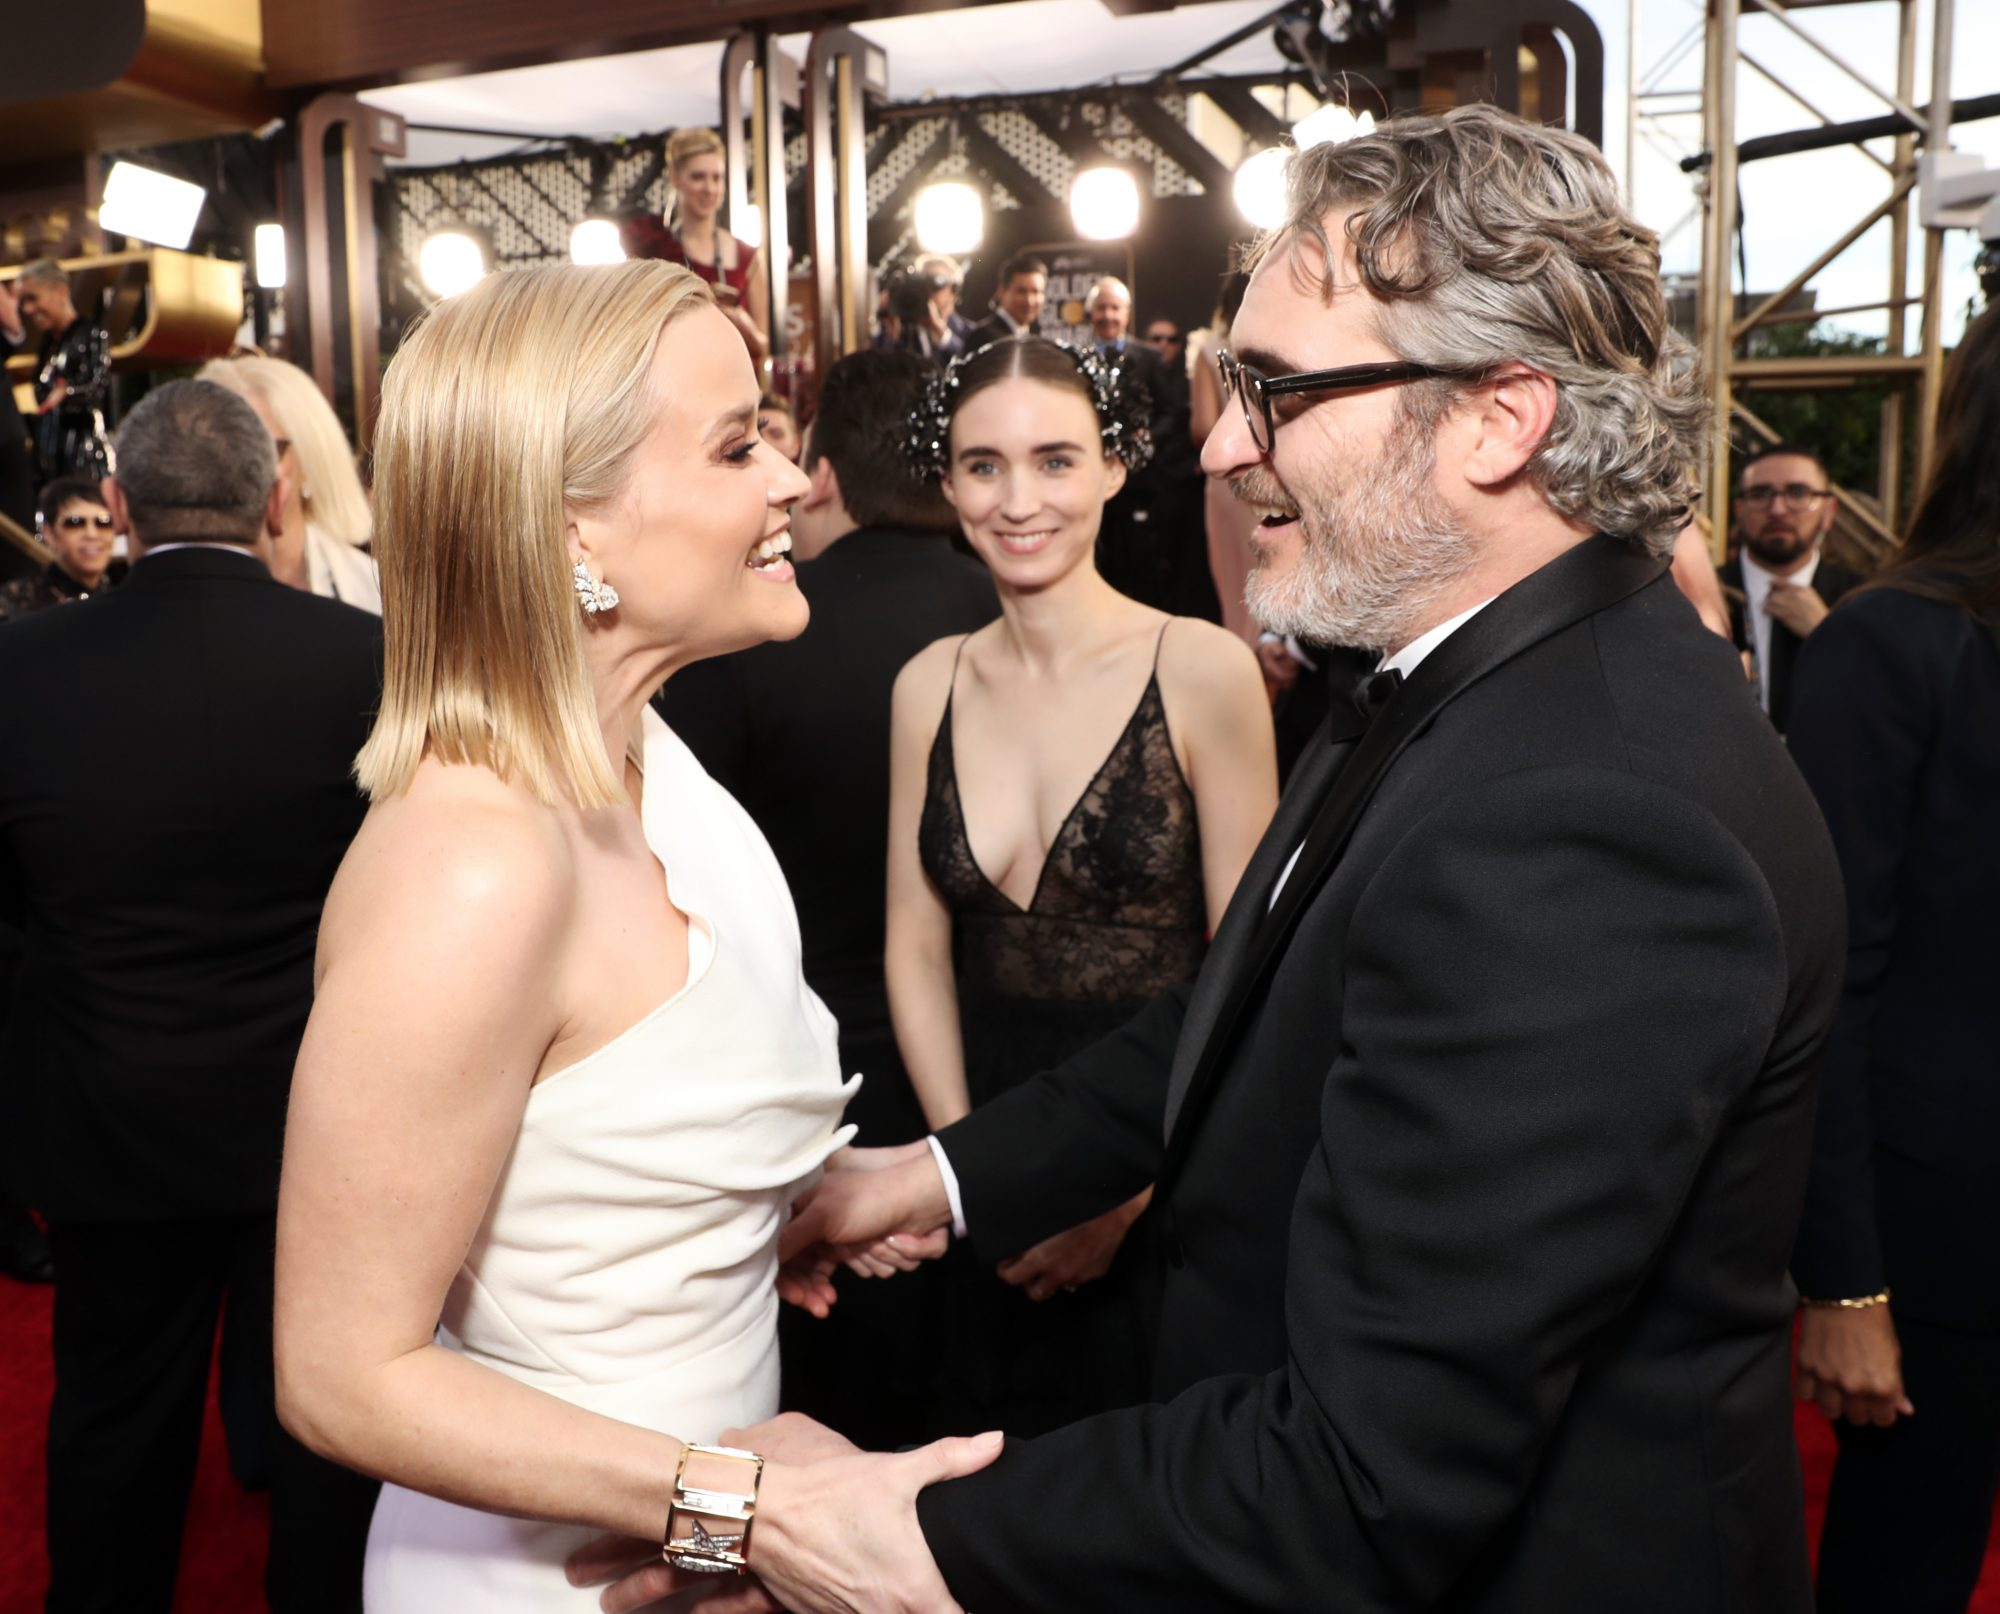 Reese Witherspoon, Rooney Mara, and Joaquin Phoenix